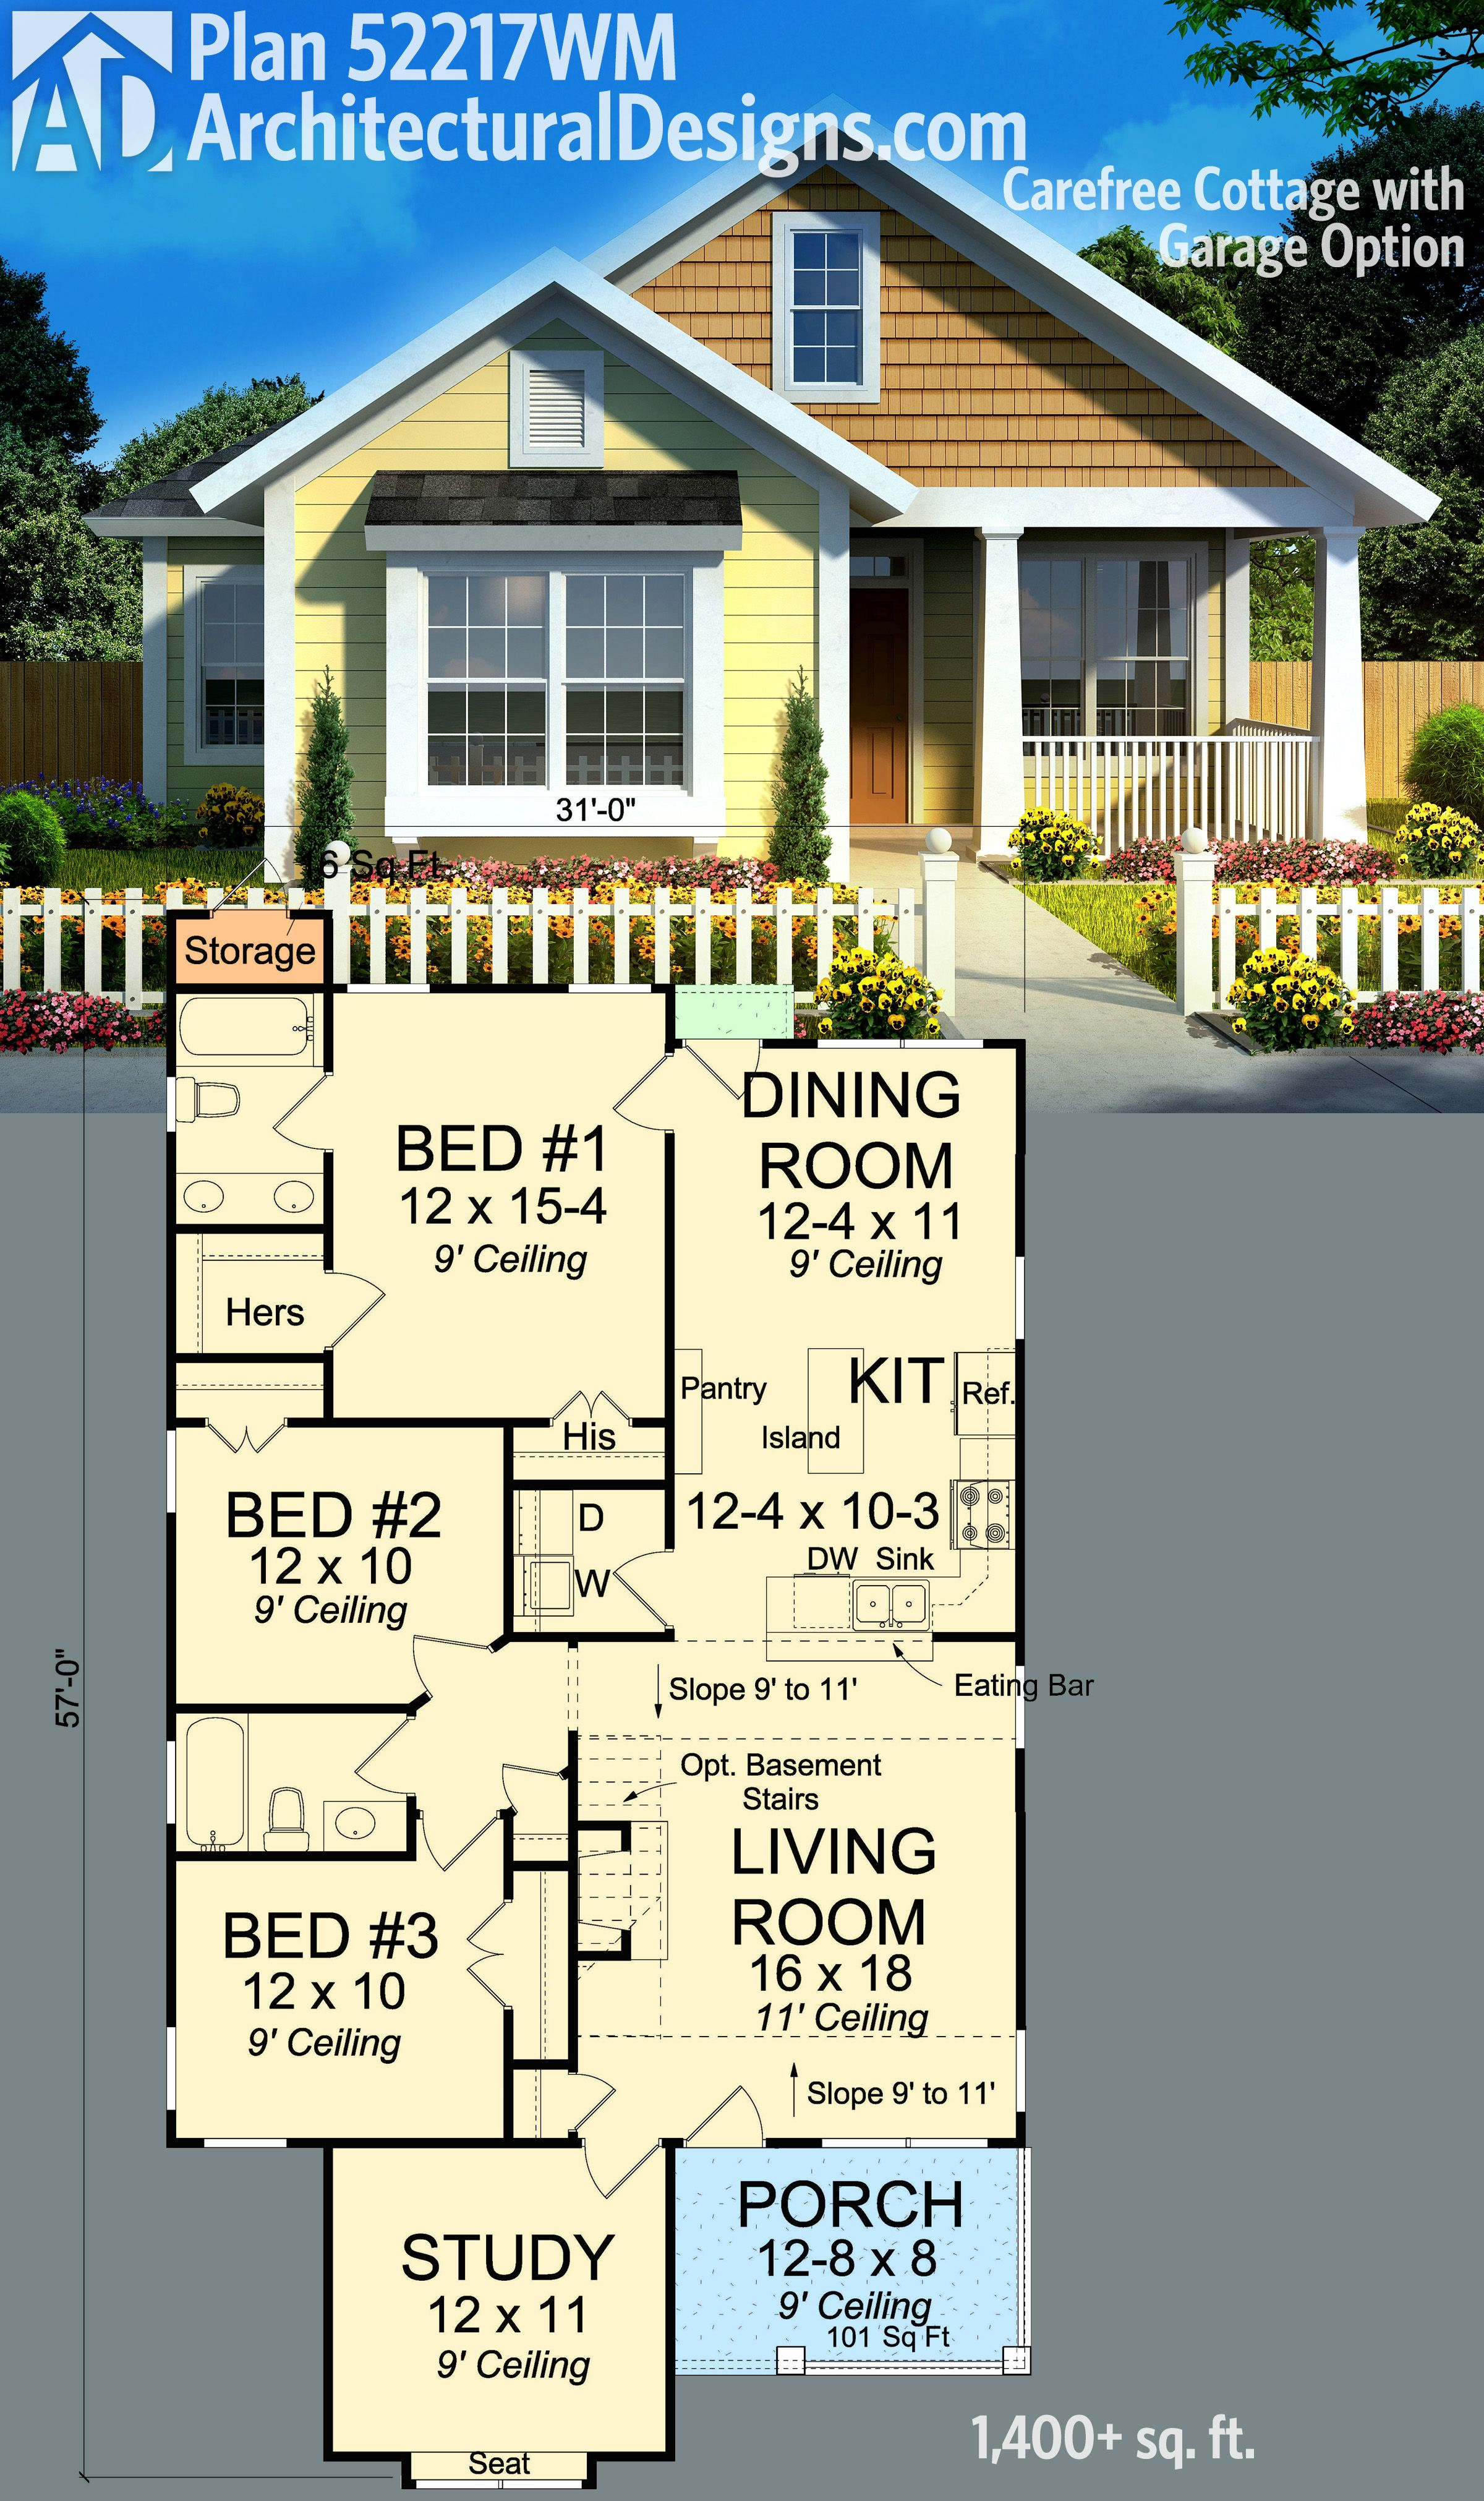 Plan 52217wm carefree cottage with garage option for Small house with garage